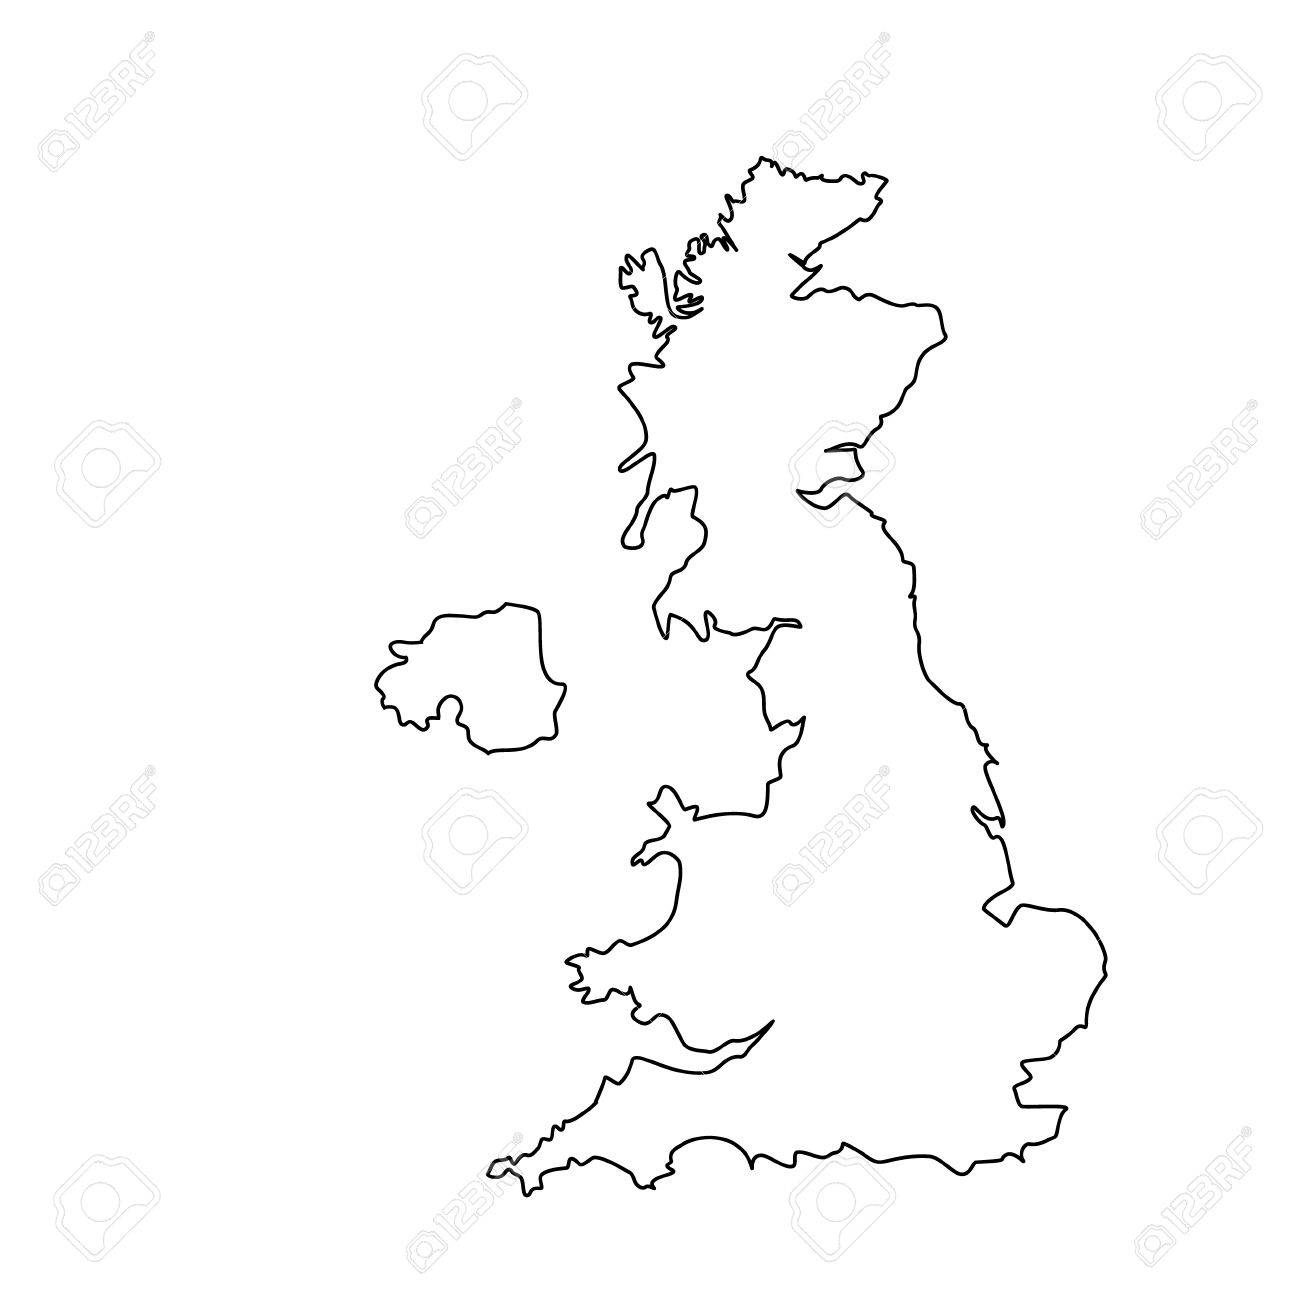 illustration raster illustration uk map outline drawing england map line icon united kingdom of great britain uk map counties